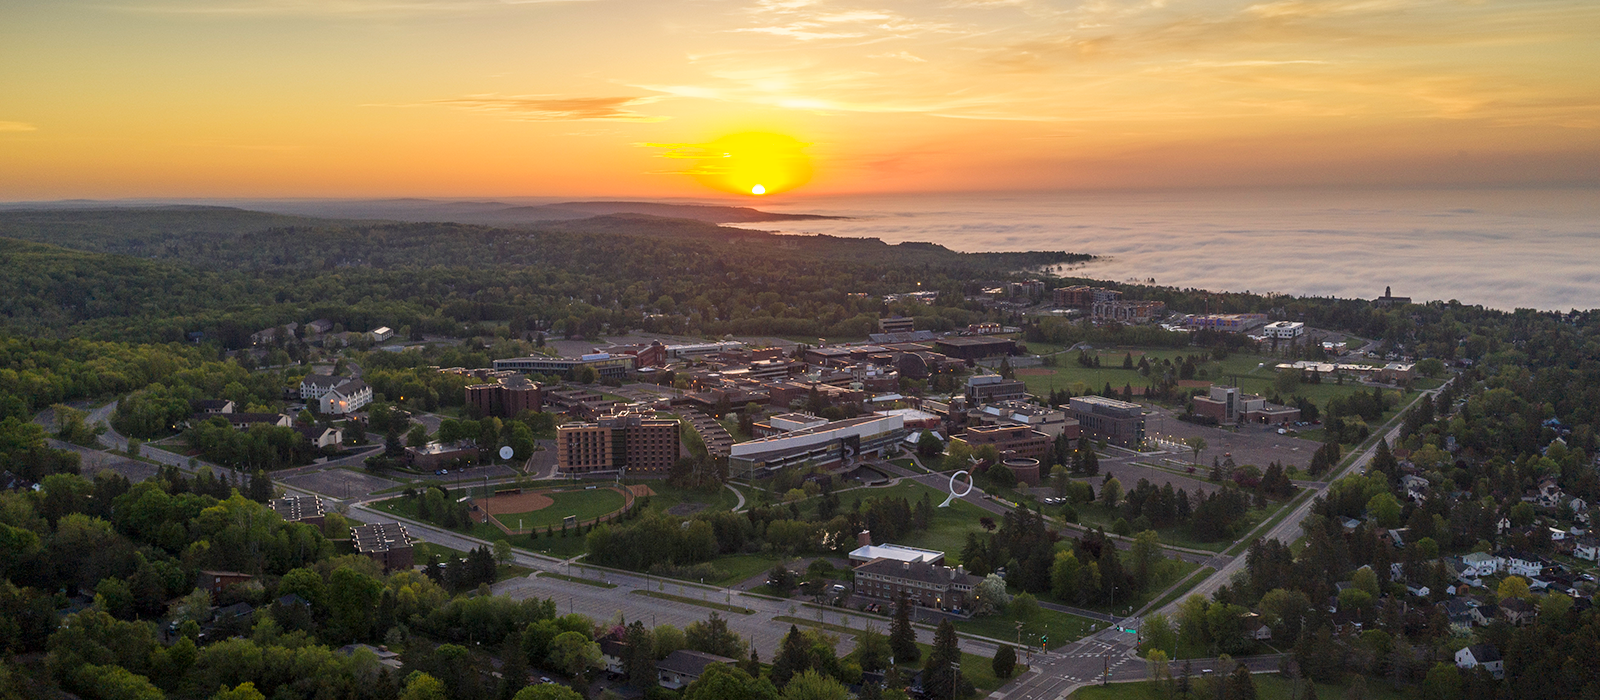 Sunset aerial shot of UMD campus and Lake Superior